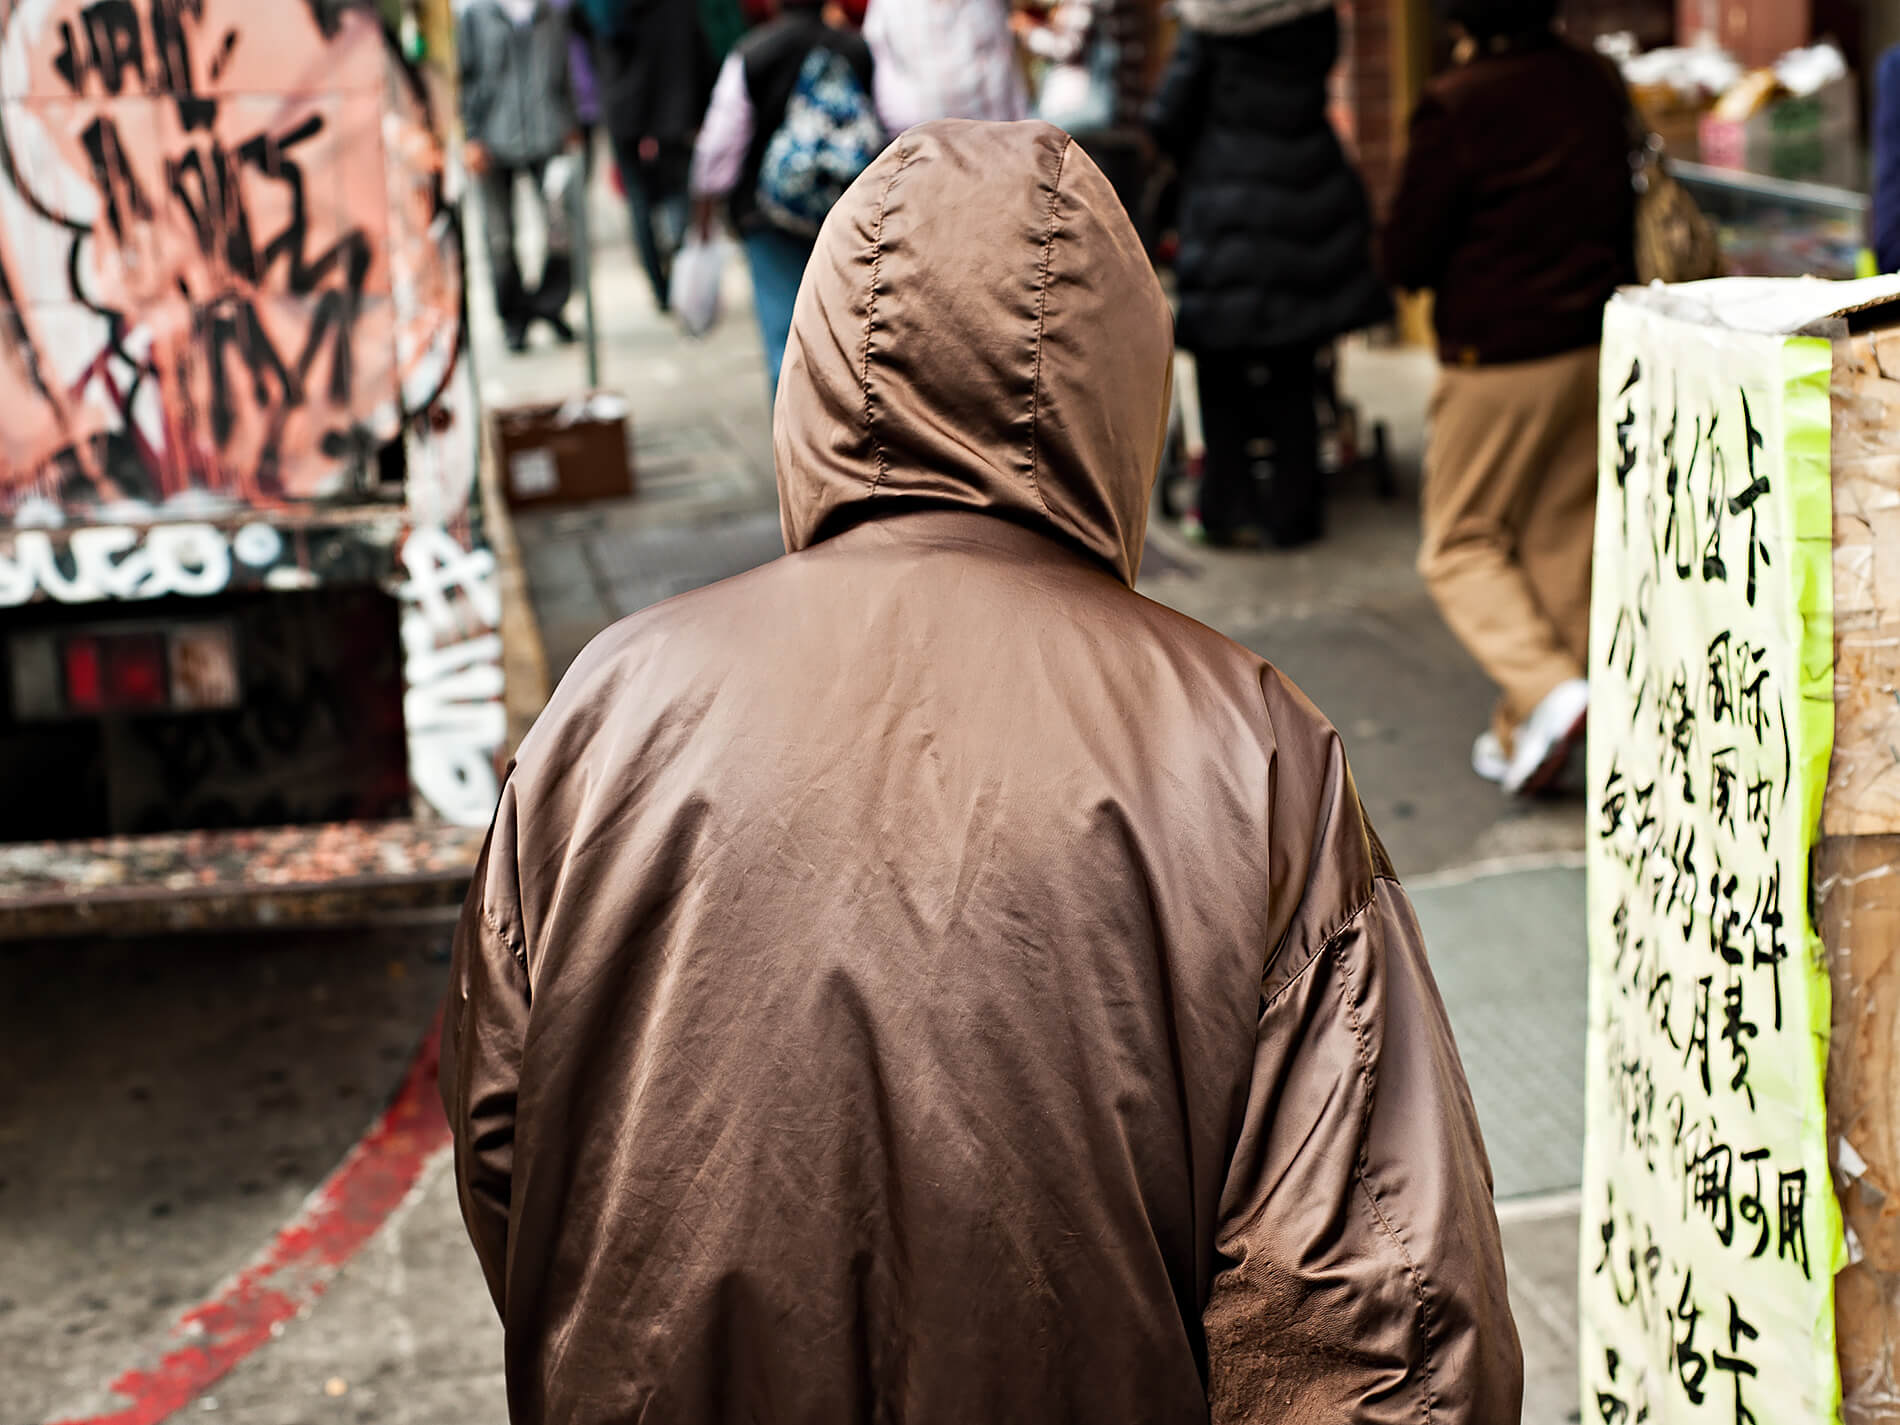 Hooded man walking through Chinatown, San Francisco